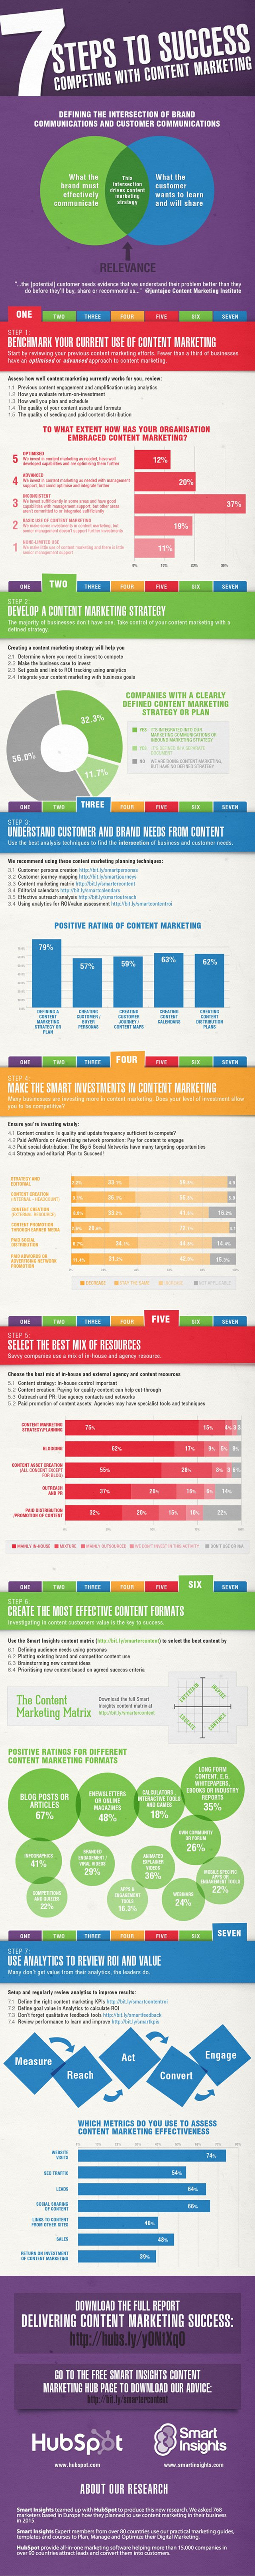 Competing With Content Marketing : 7 Steps To Success!